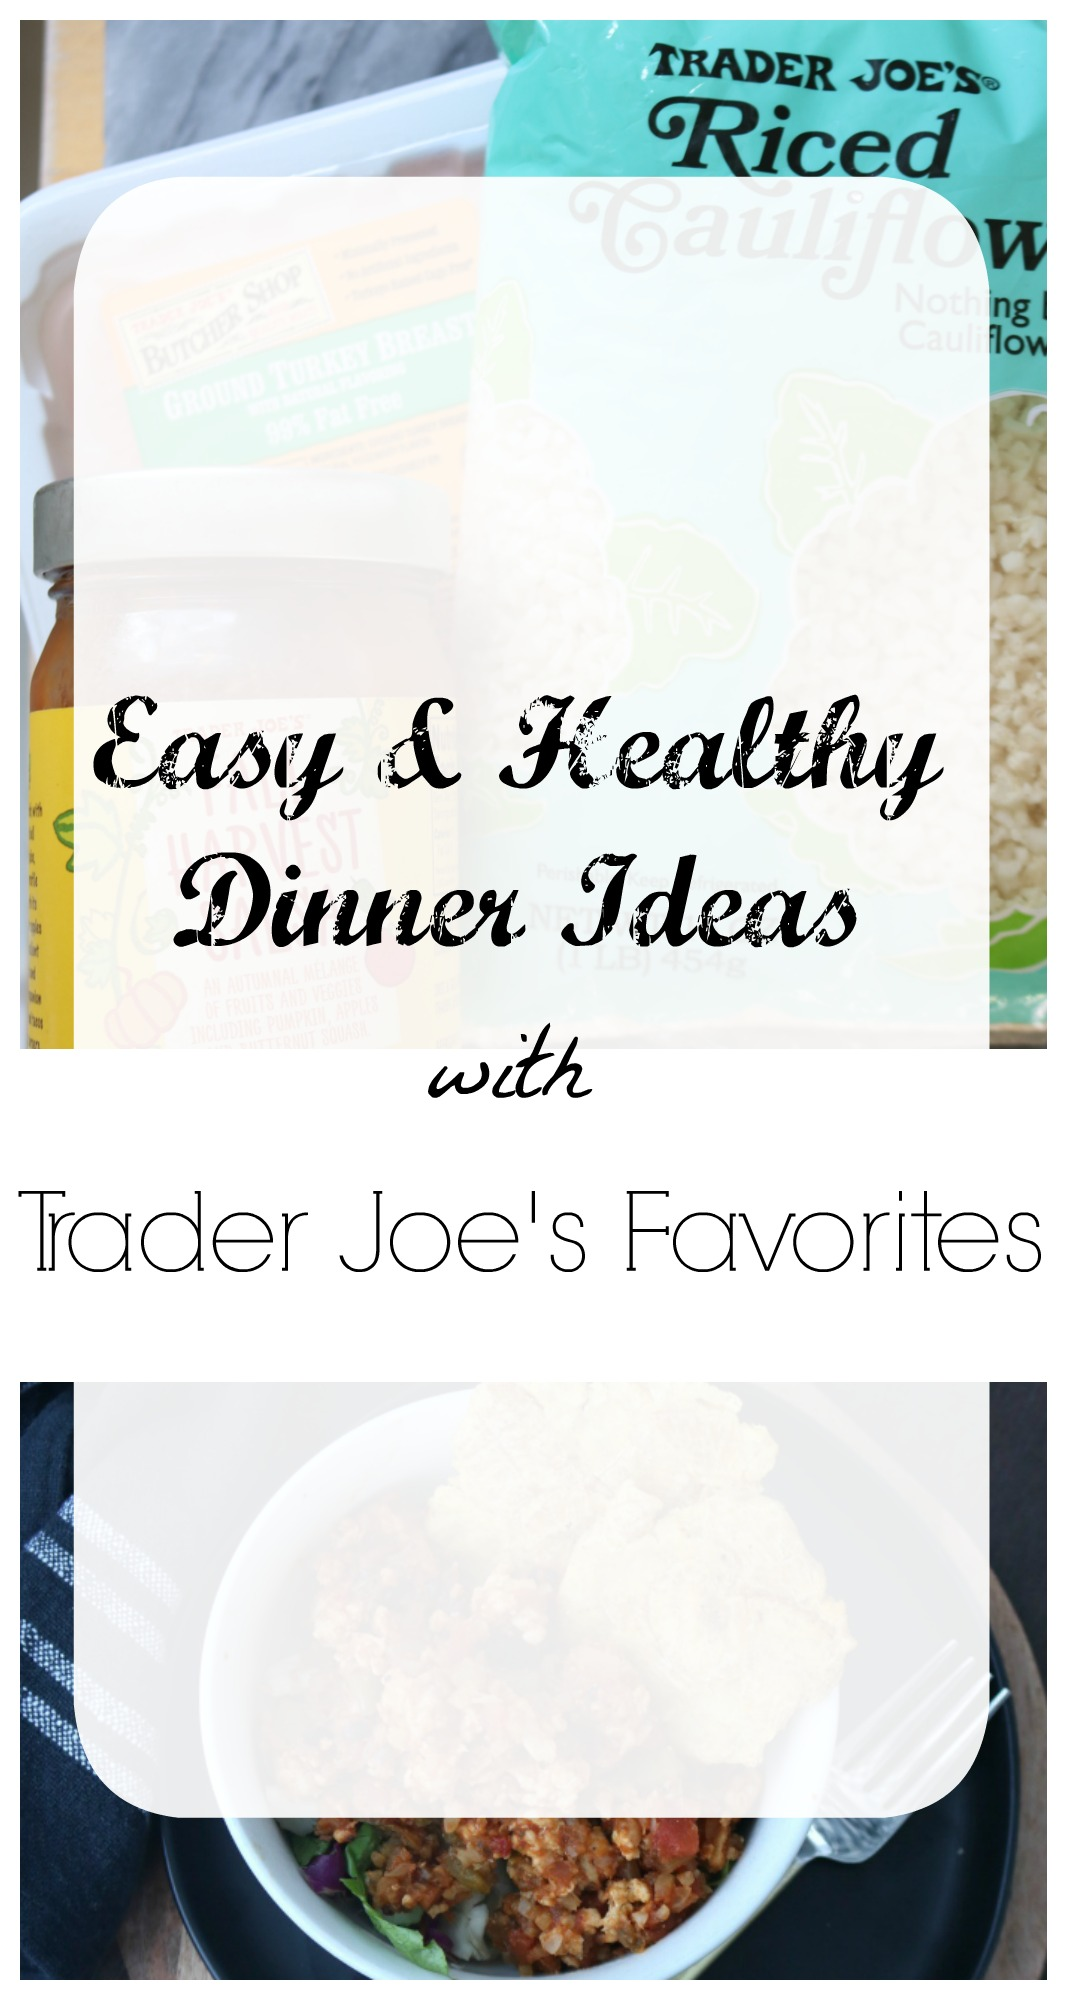 Easy and Healthy Dinner Ideas with Trader Joe's Favorites